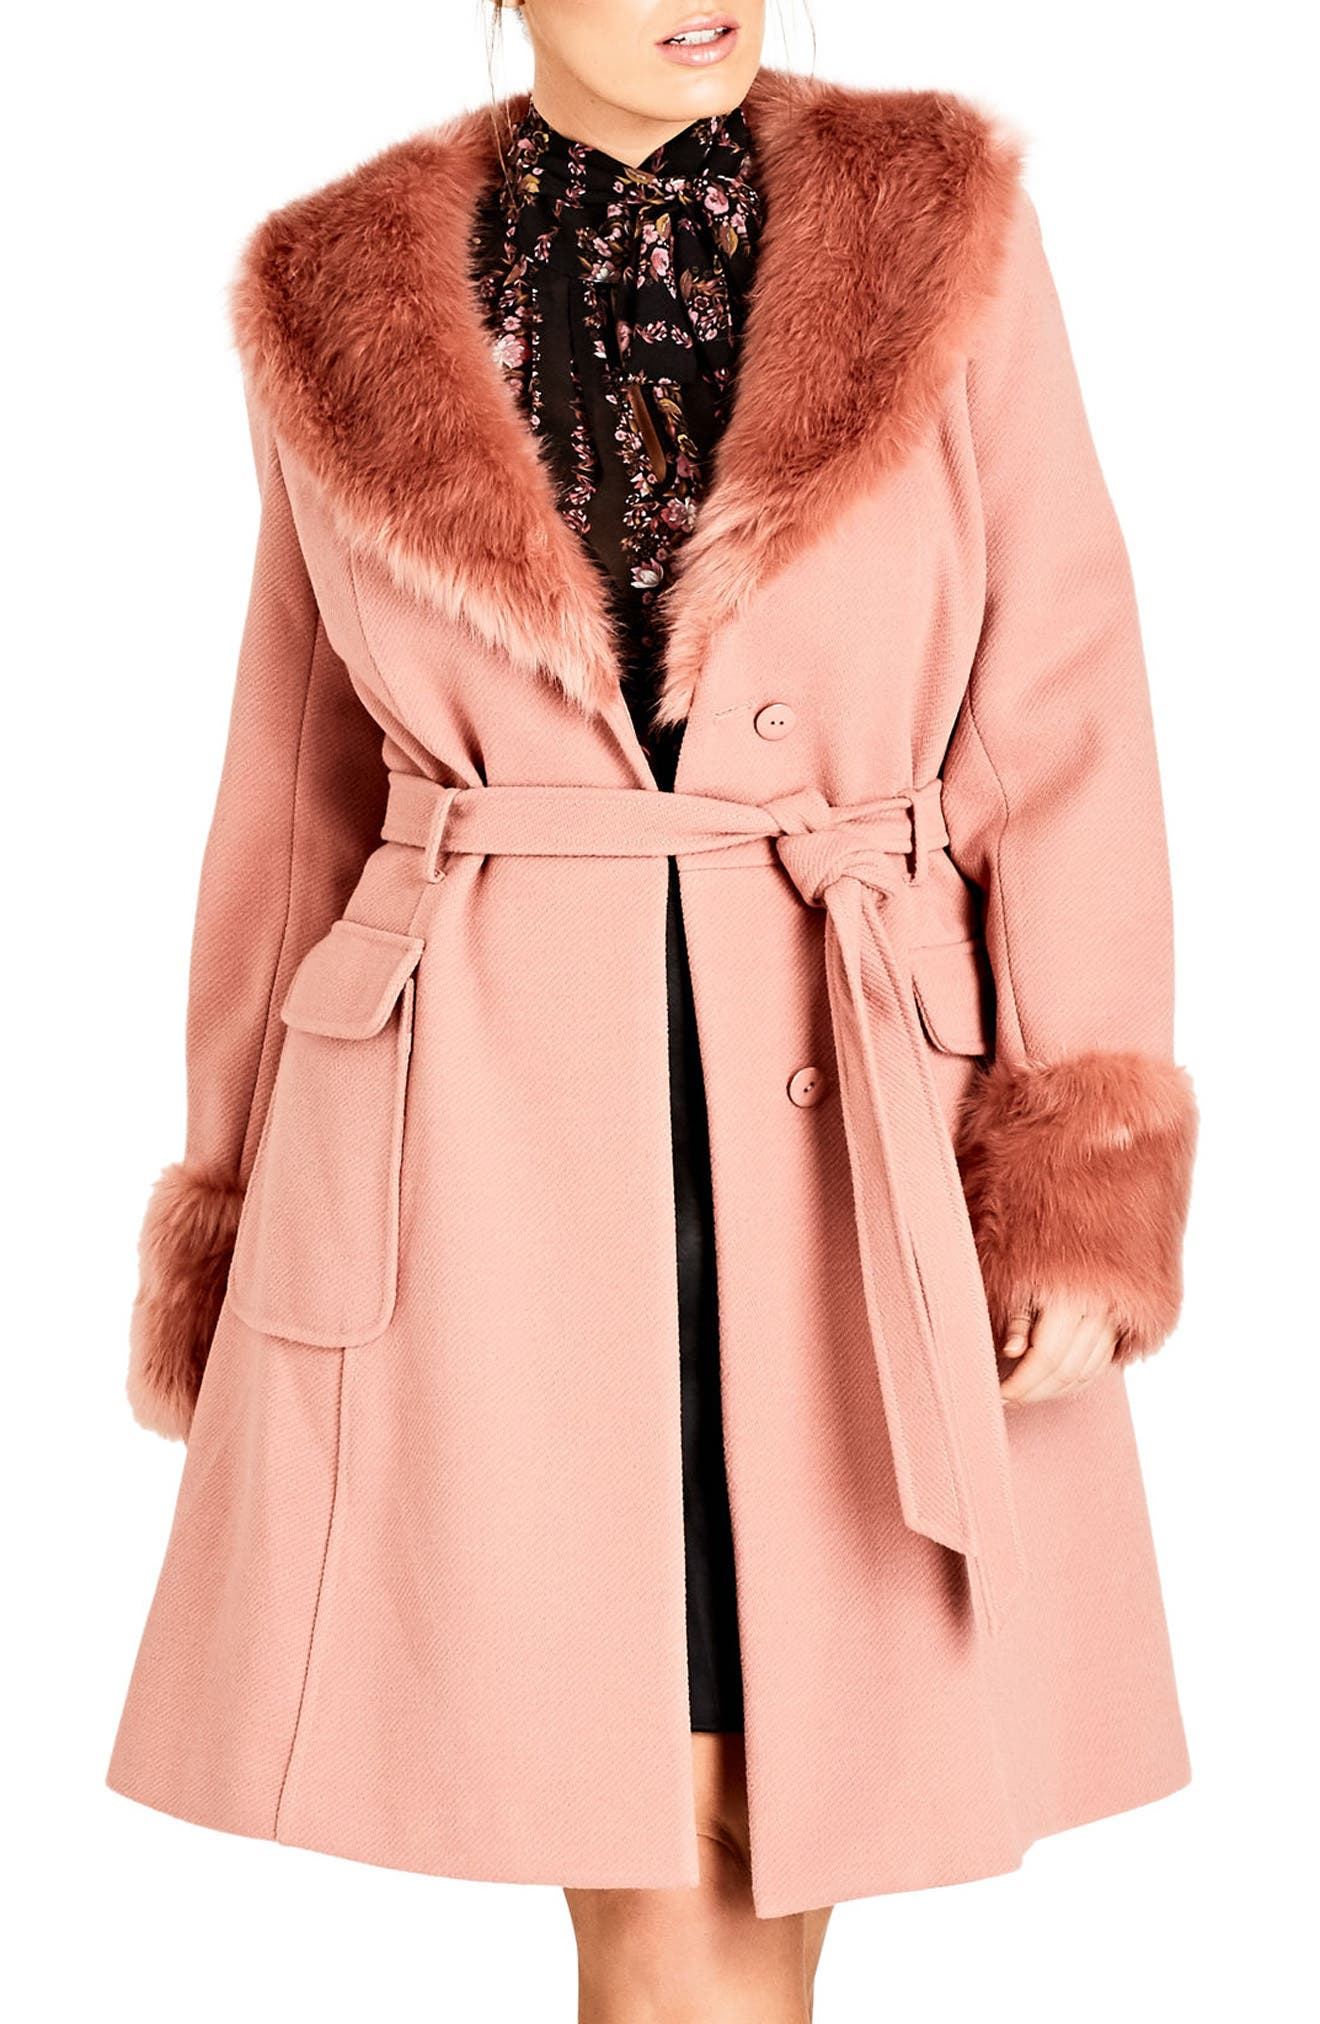 Main Image - City Chic Make Me Blush Faux Fur Peacoat (Plus Size)